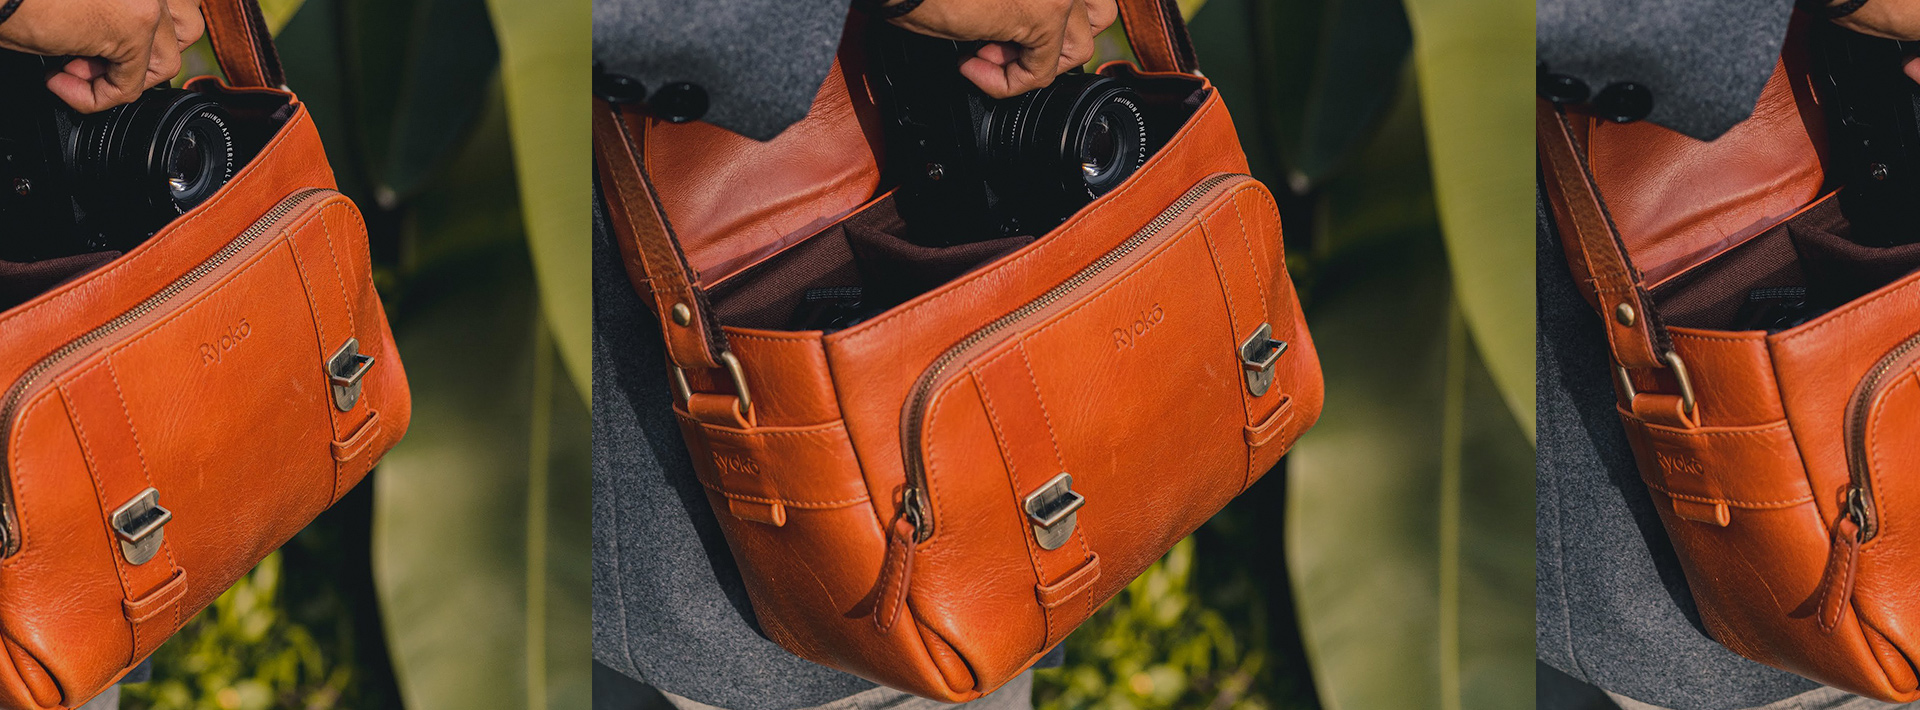 Survival work from home kit in Ryokō's leather goods.